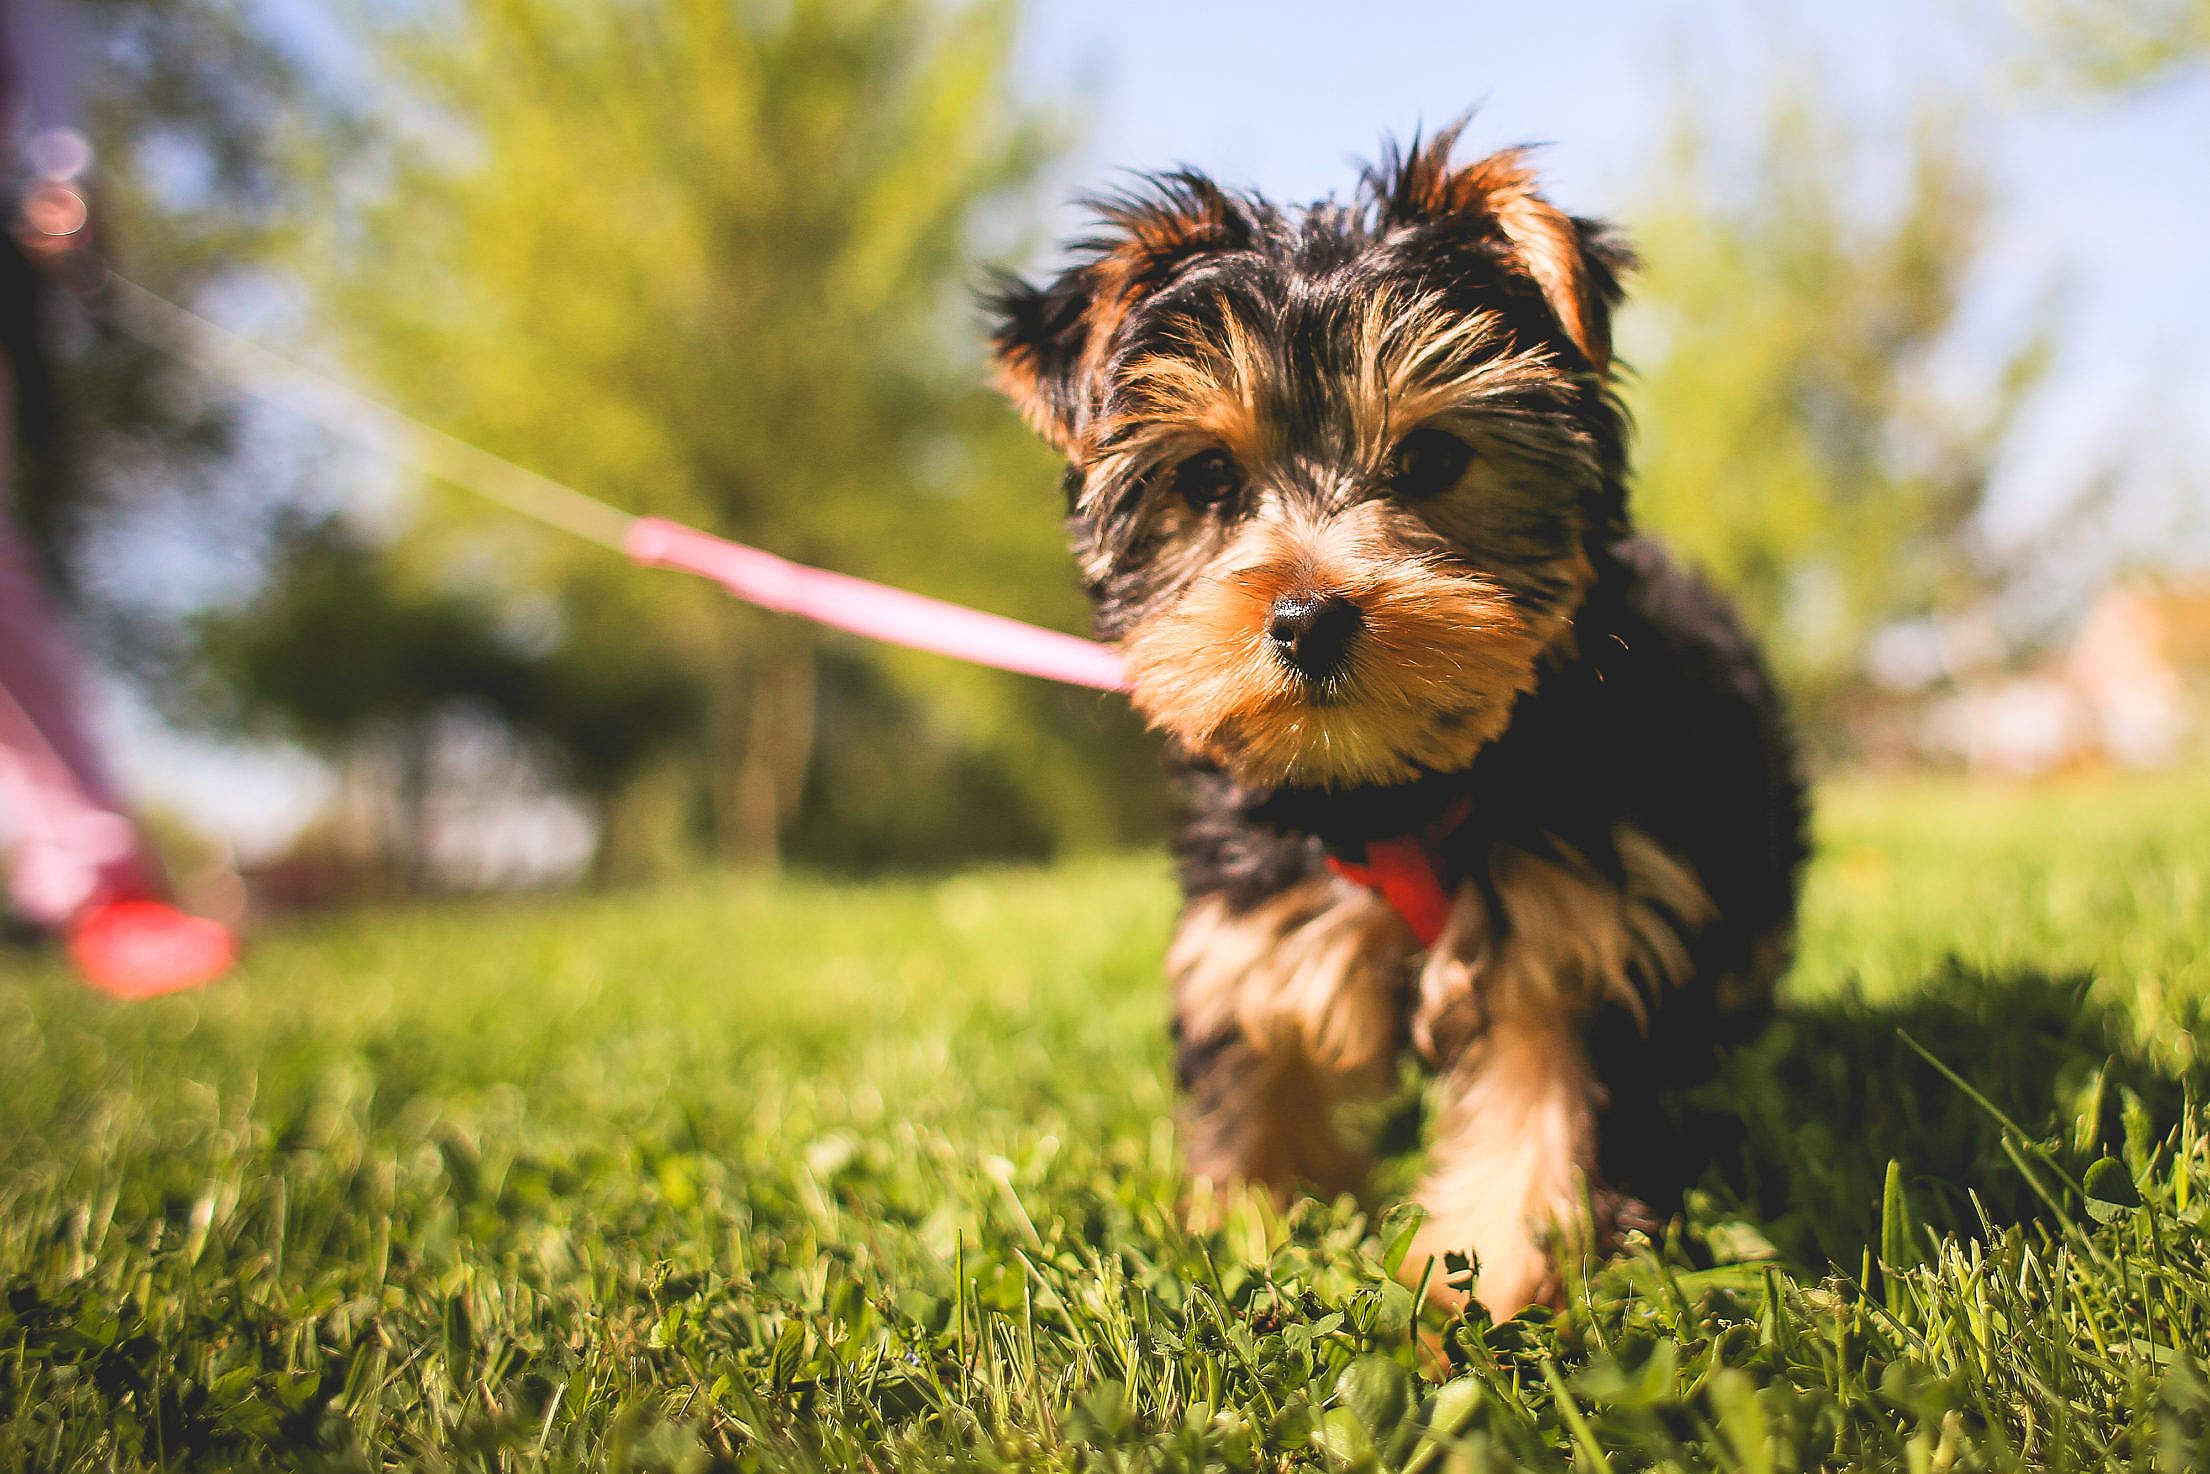 Cute Yorkshire Puppy in the Garden Free Stock Photo